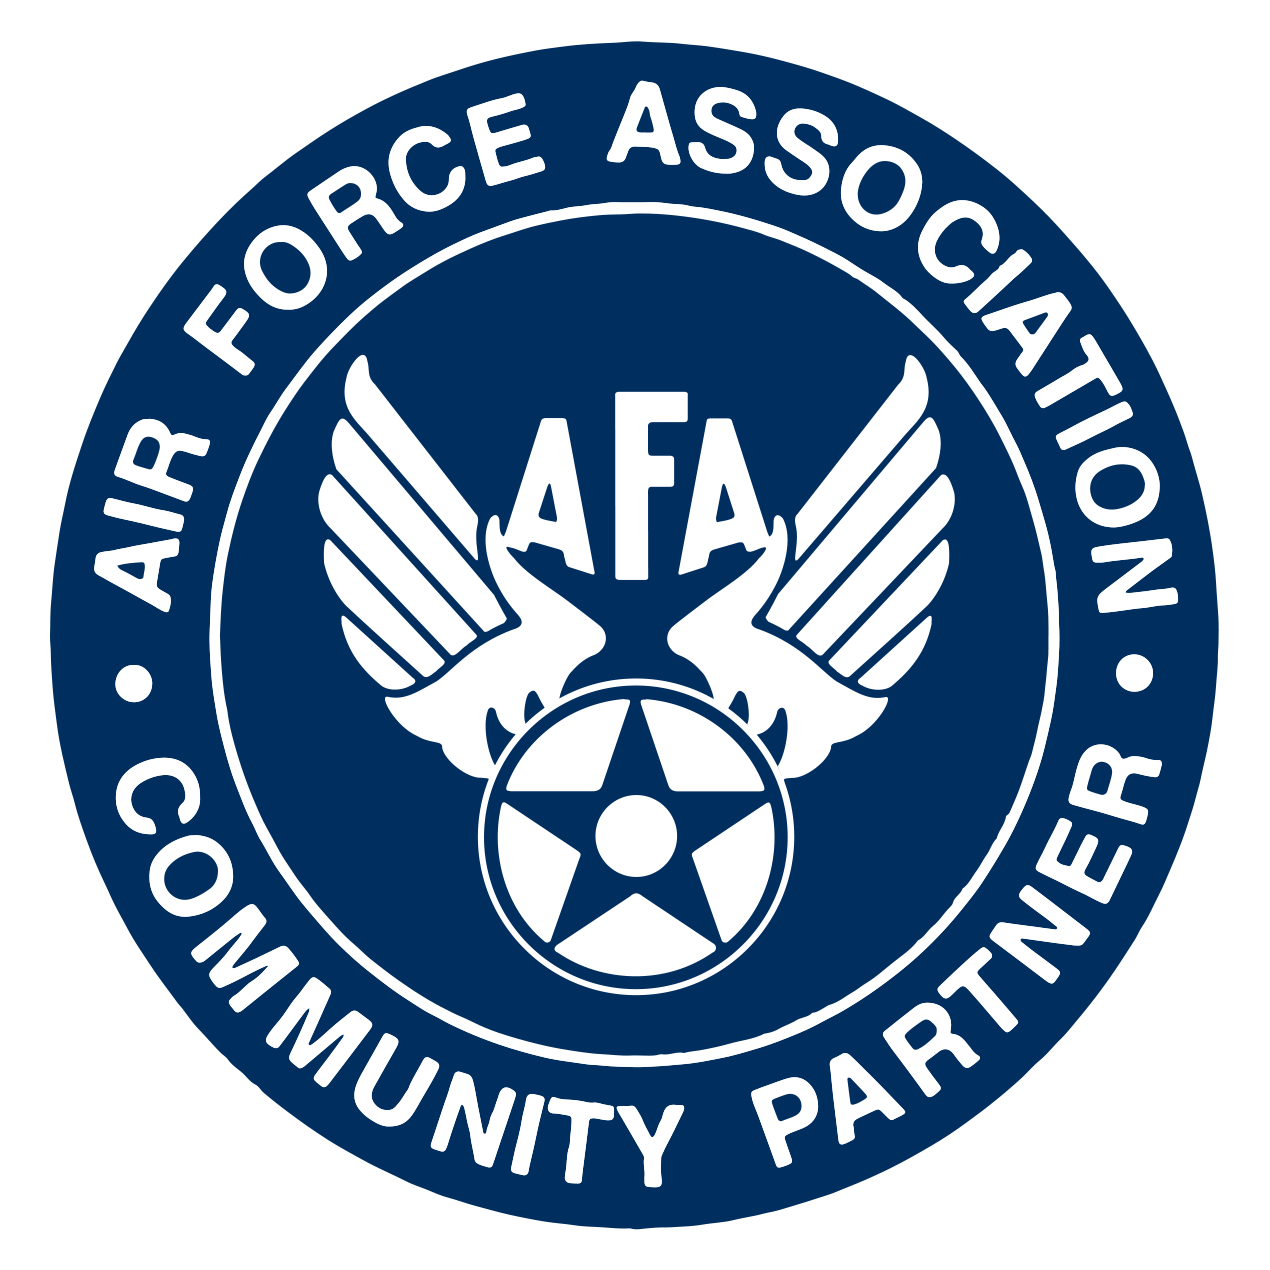 AFA_Community_Partner_logo.png